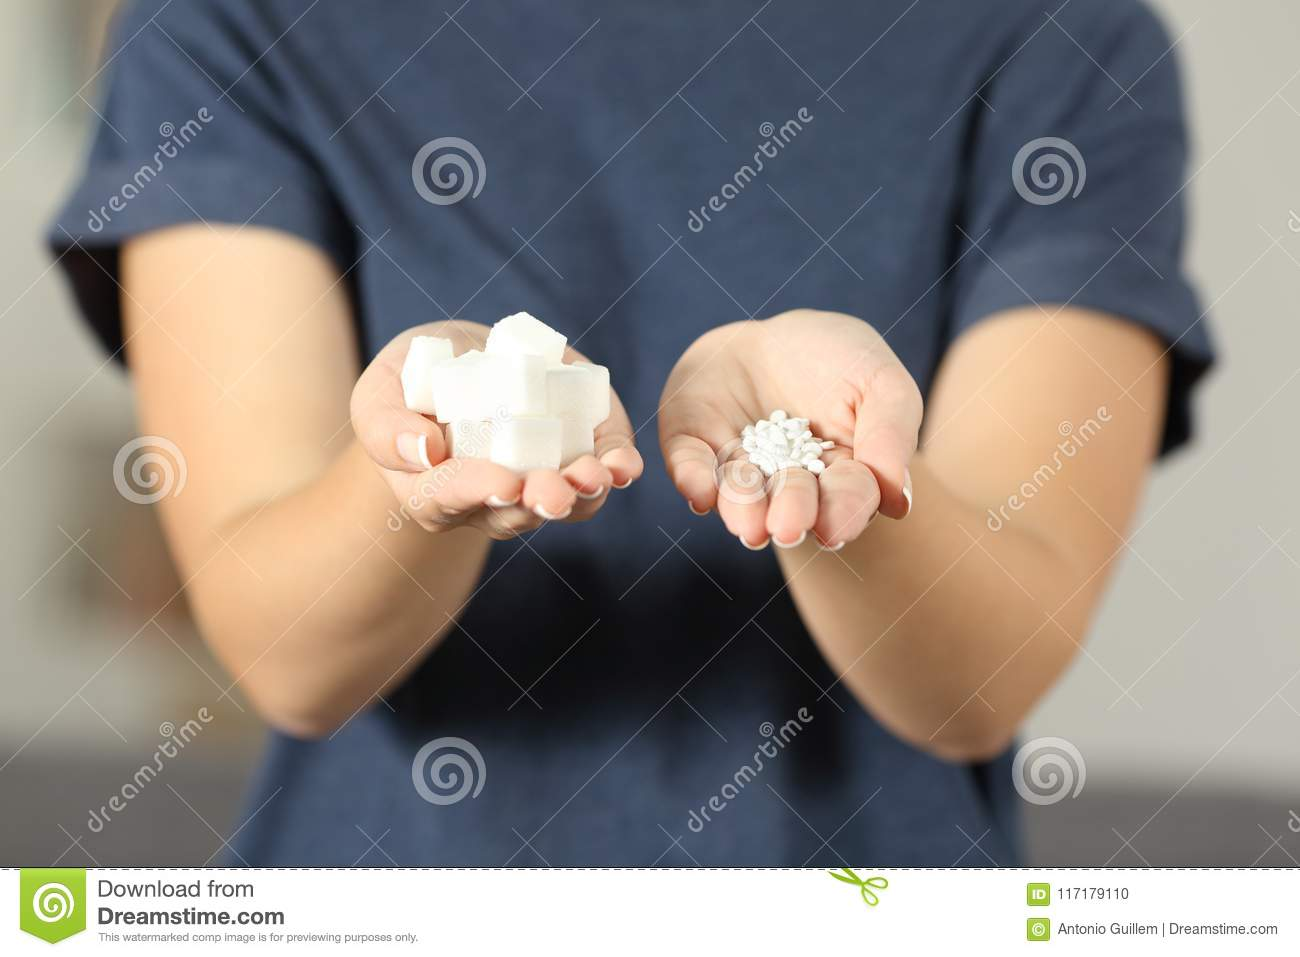 Woman hands holding sugar cubes and saccharin pills